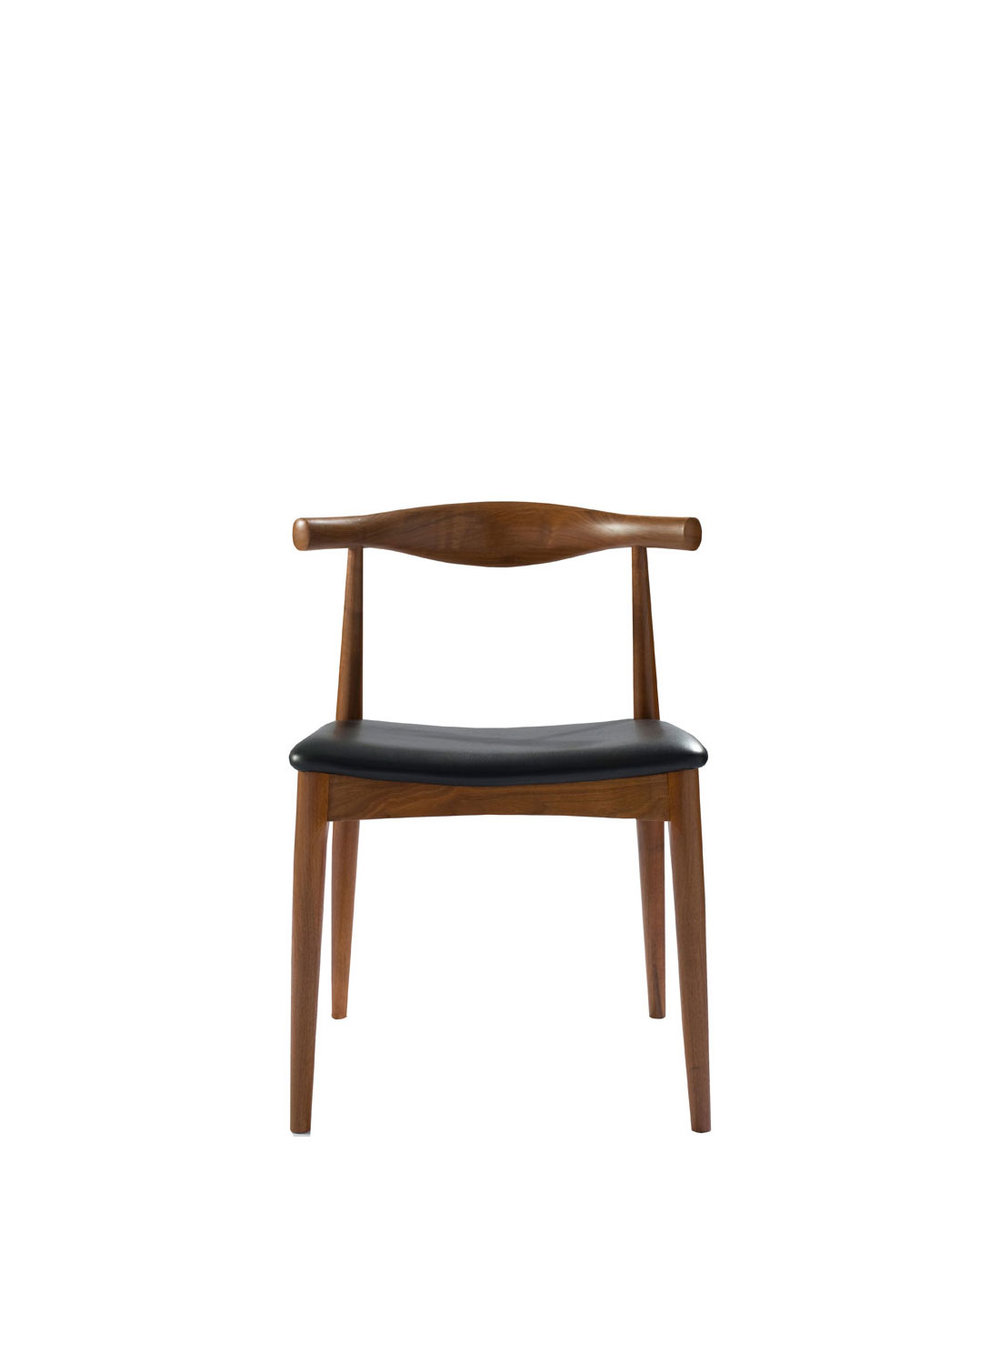 hans wegner style elbow walnut chair with premium black leather